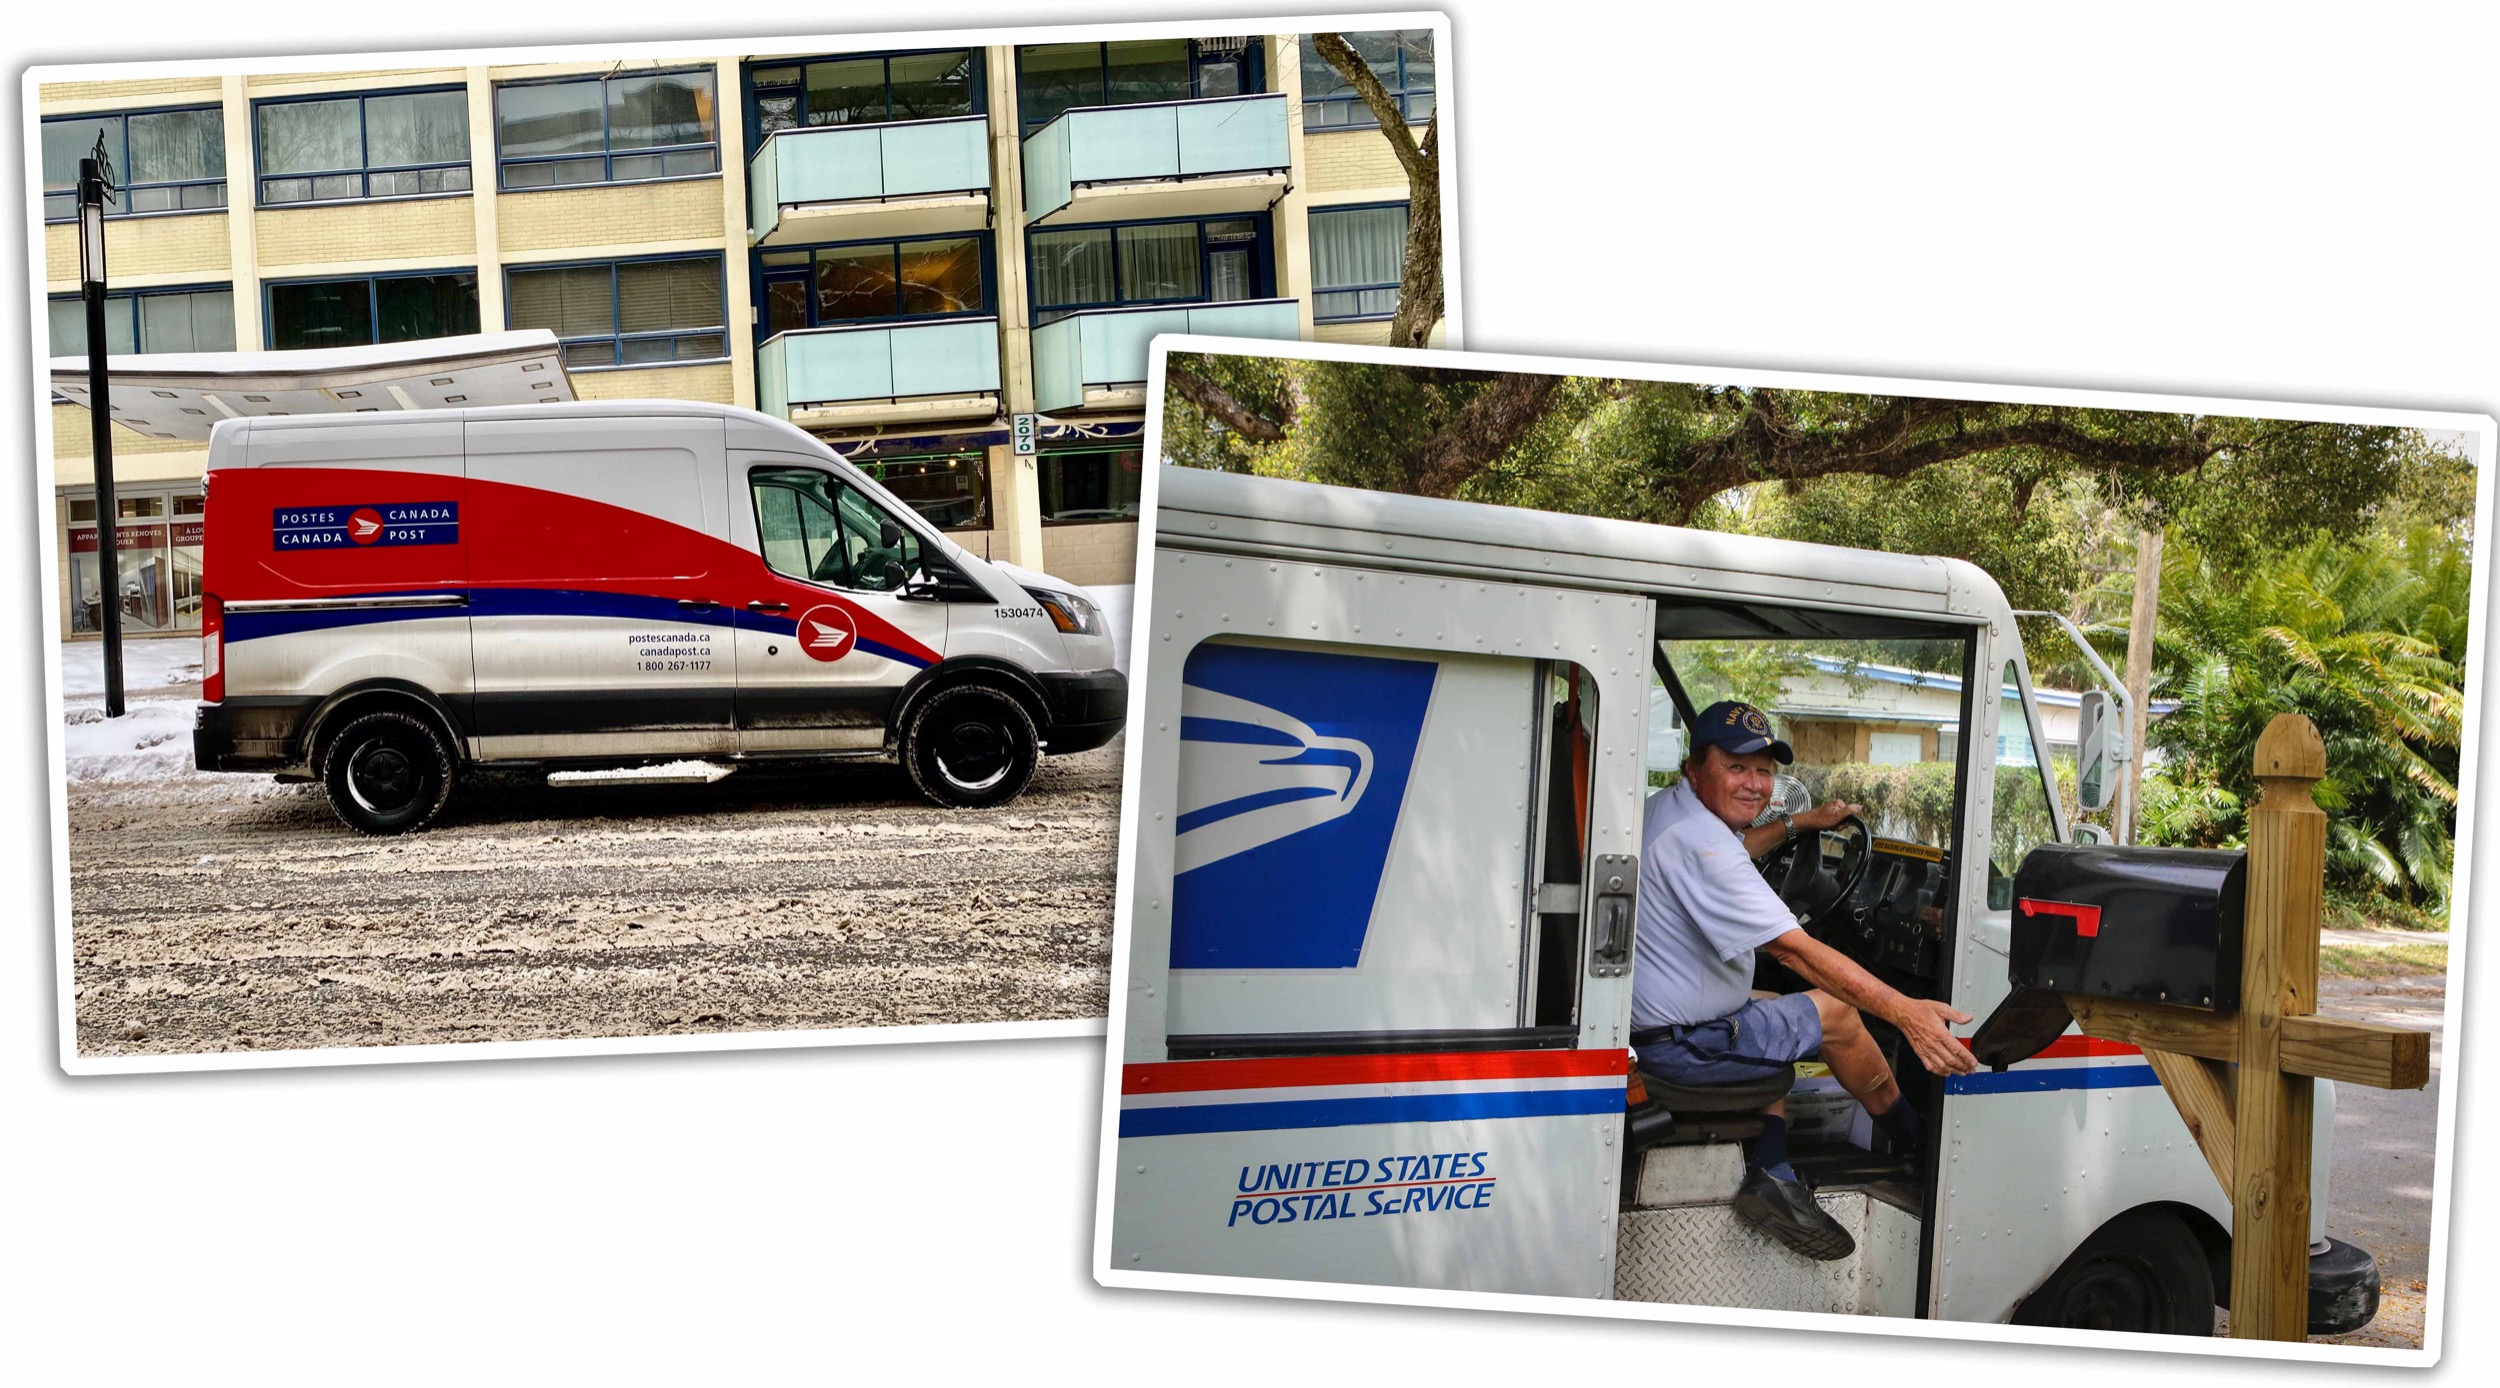 Canada Post and US Mail Delivery trucks